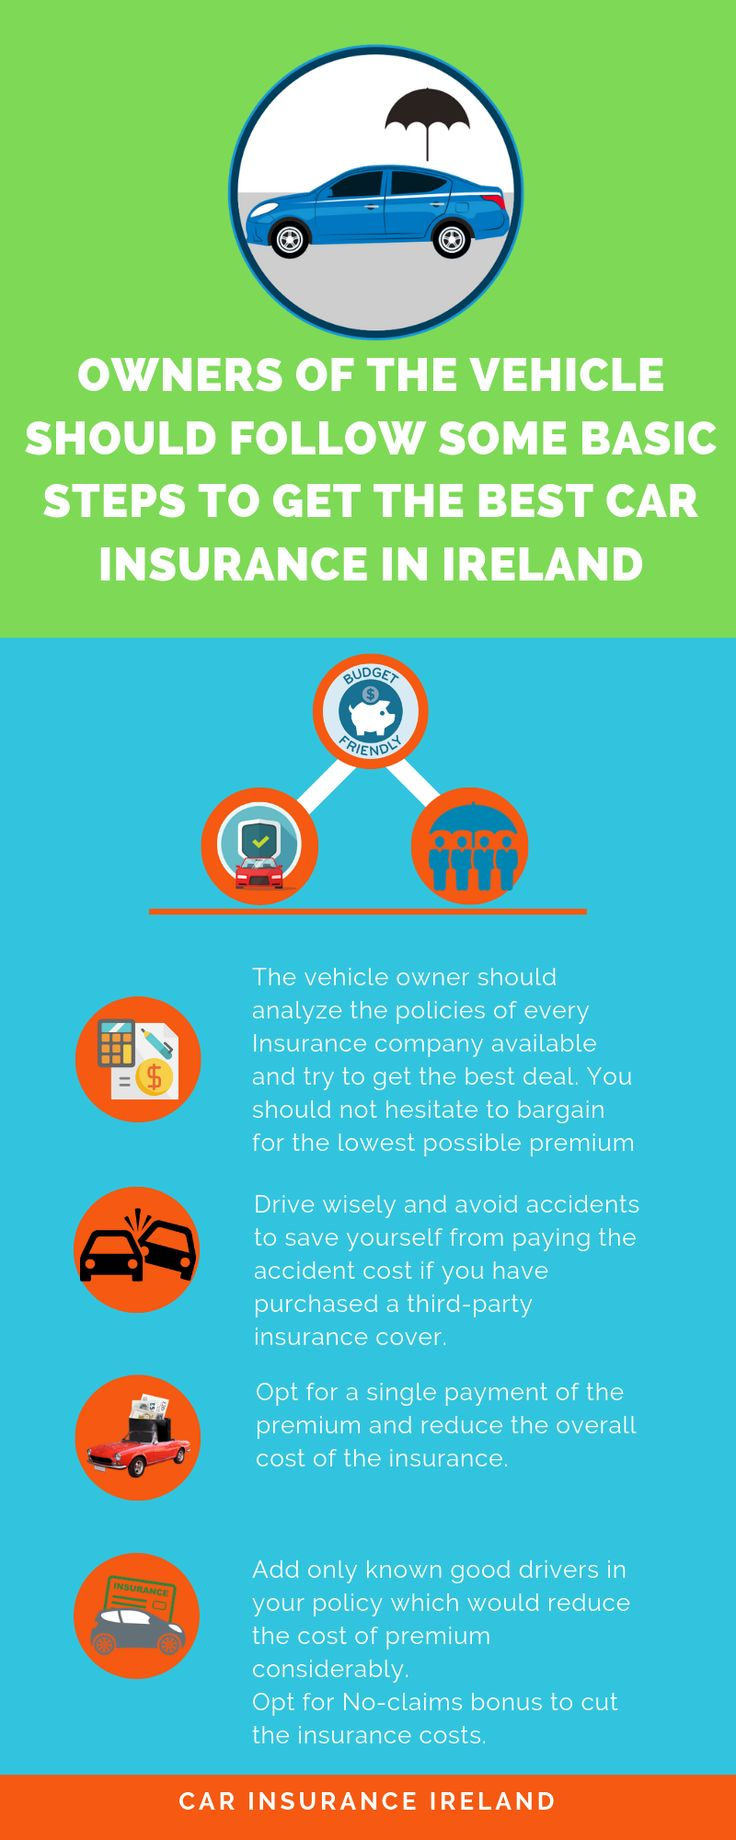 Looking for car insurance in Ireland. Save time and money